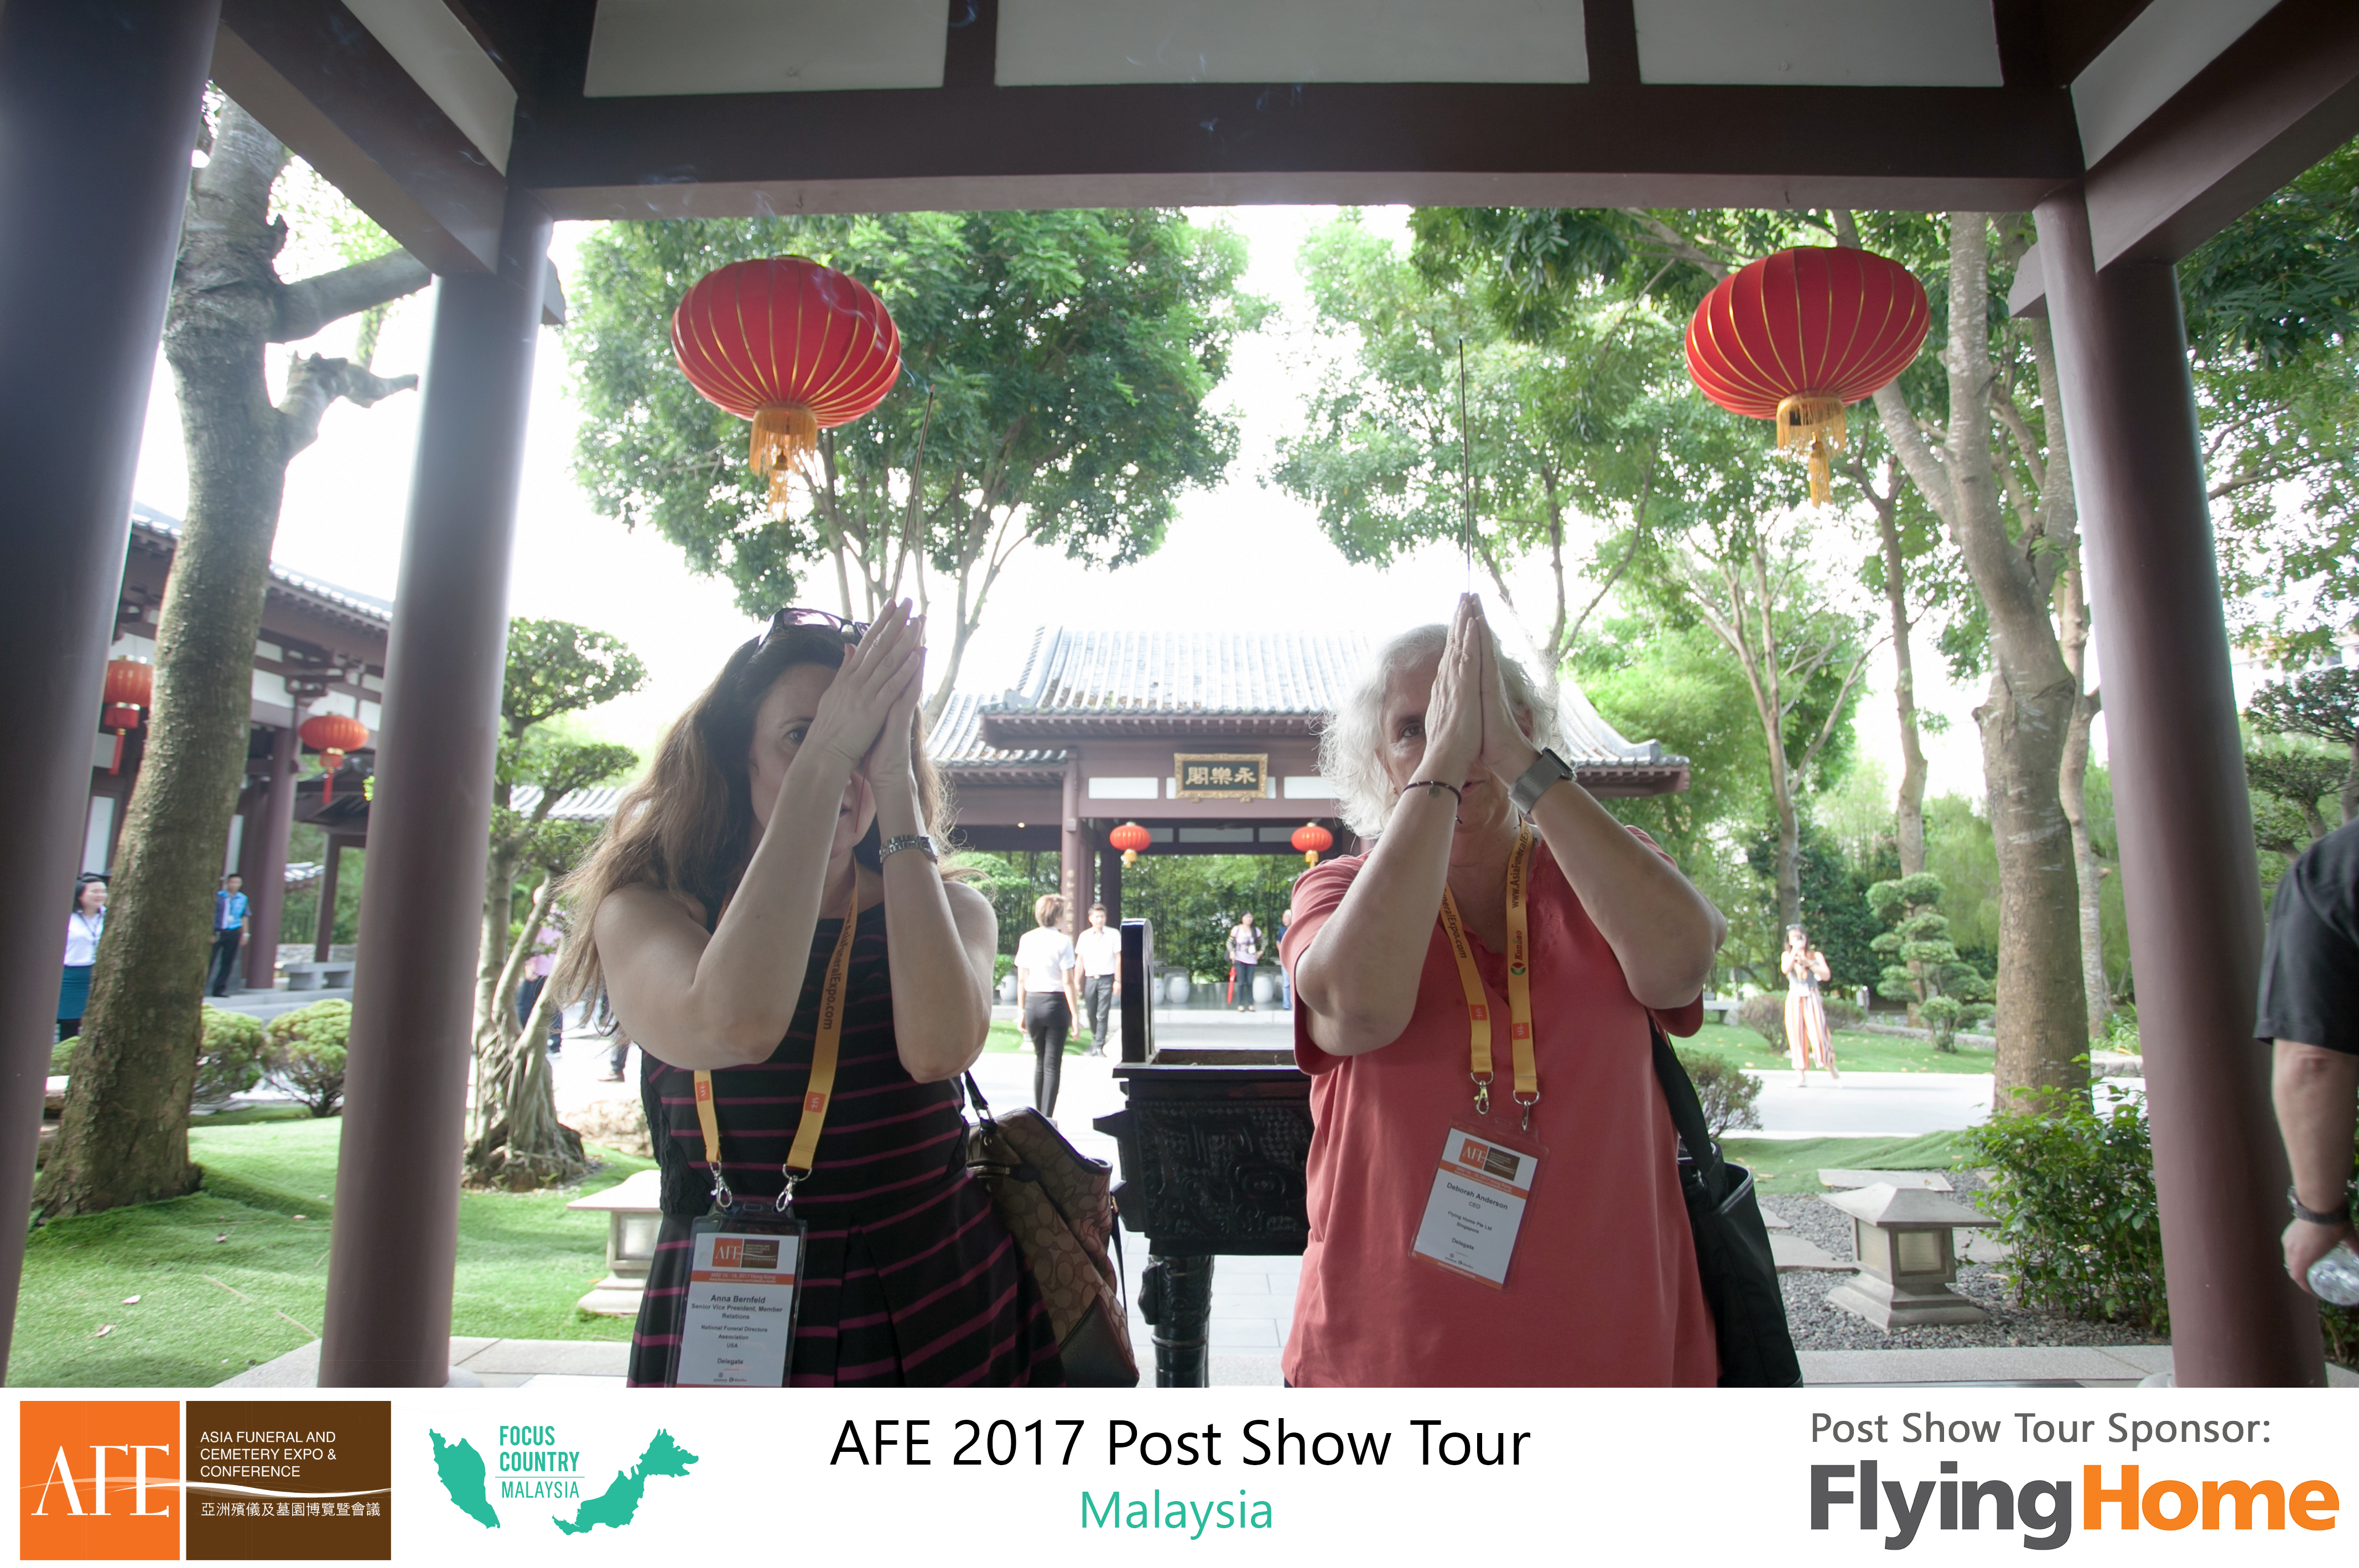 AFE Post Show Tour 2017 Day 2 - 16